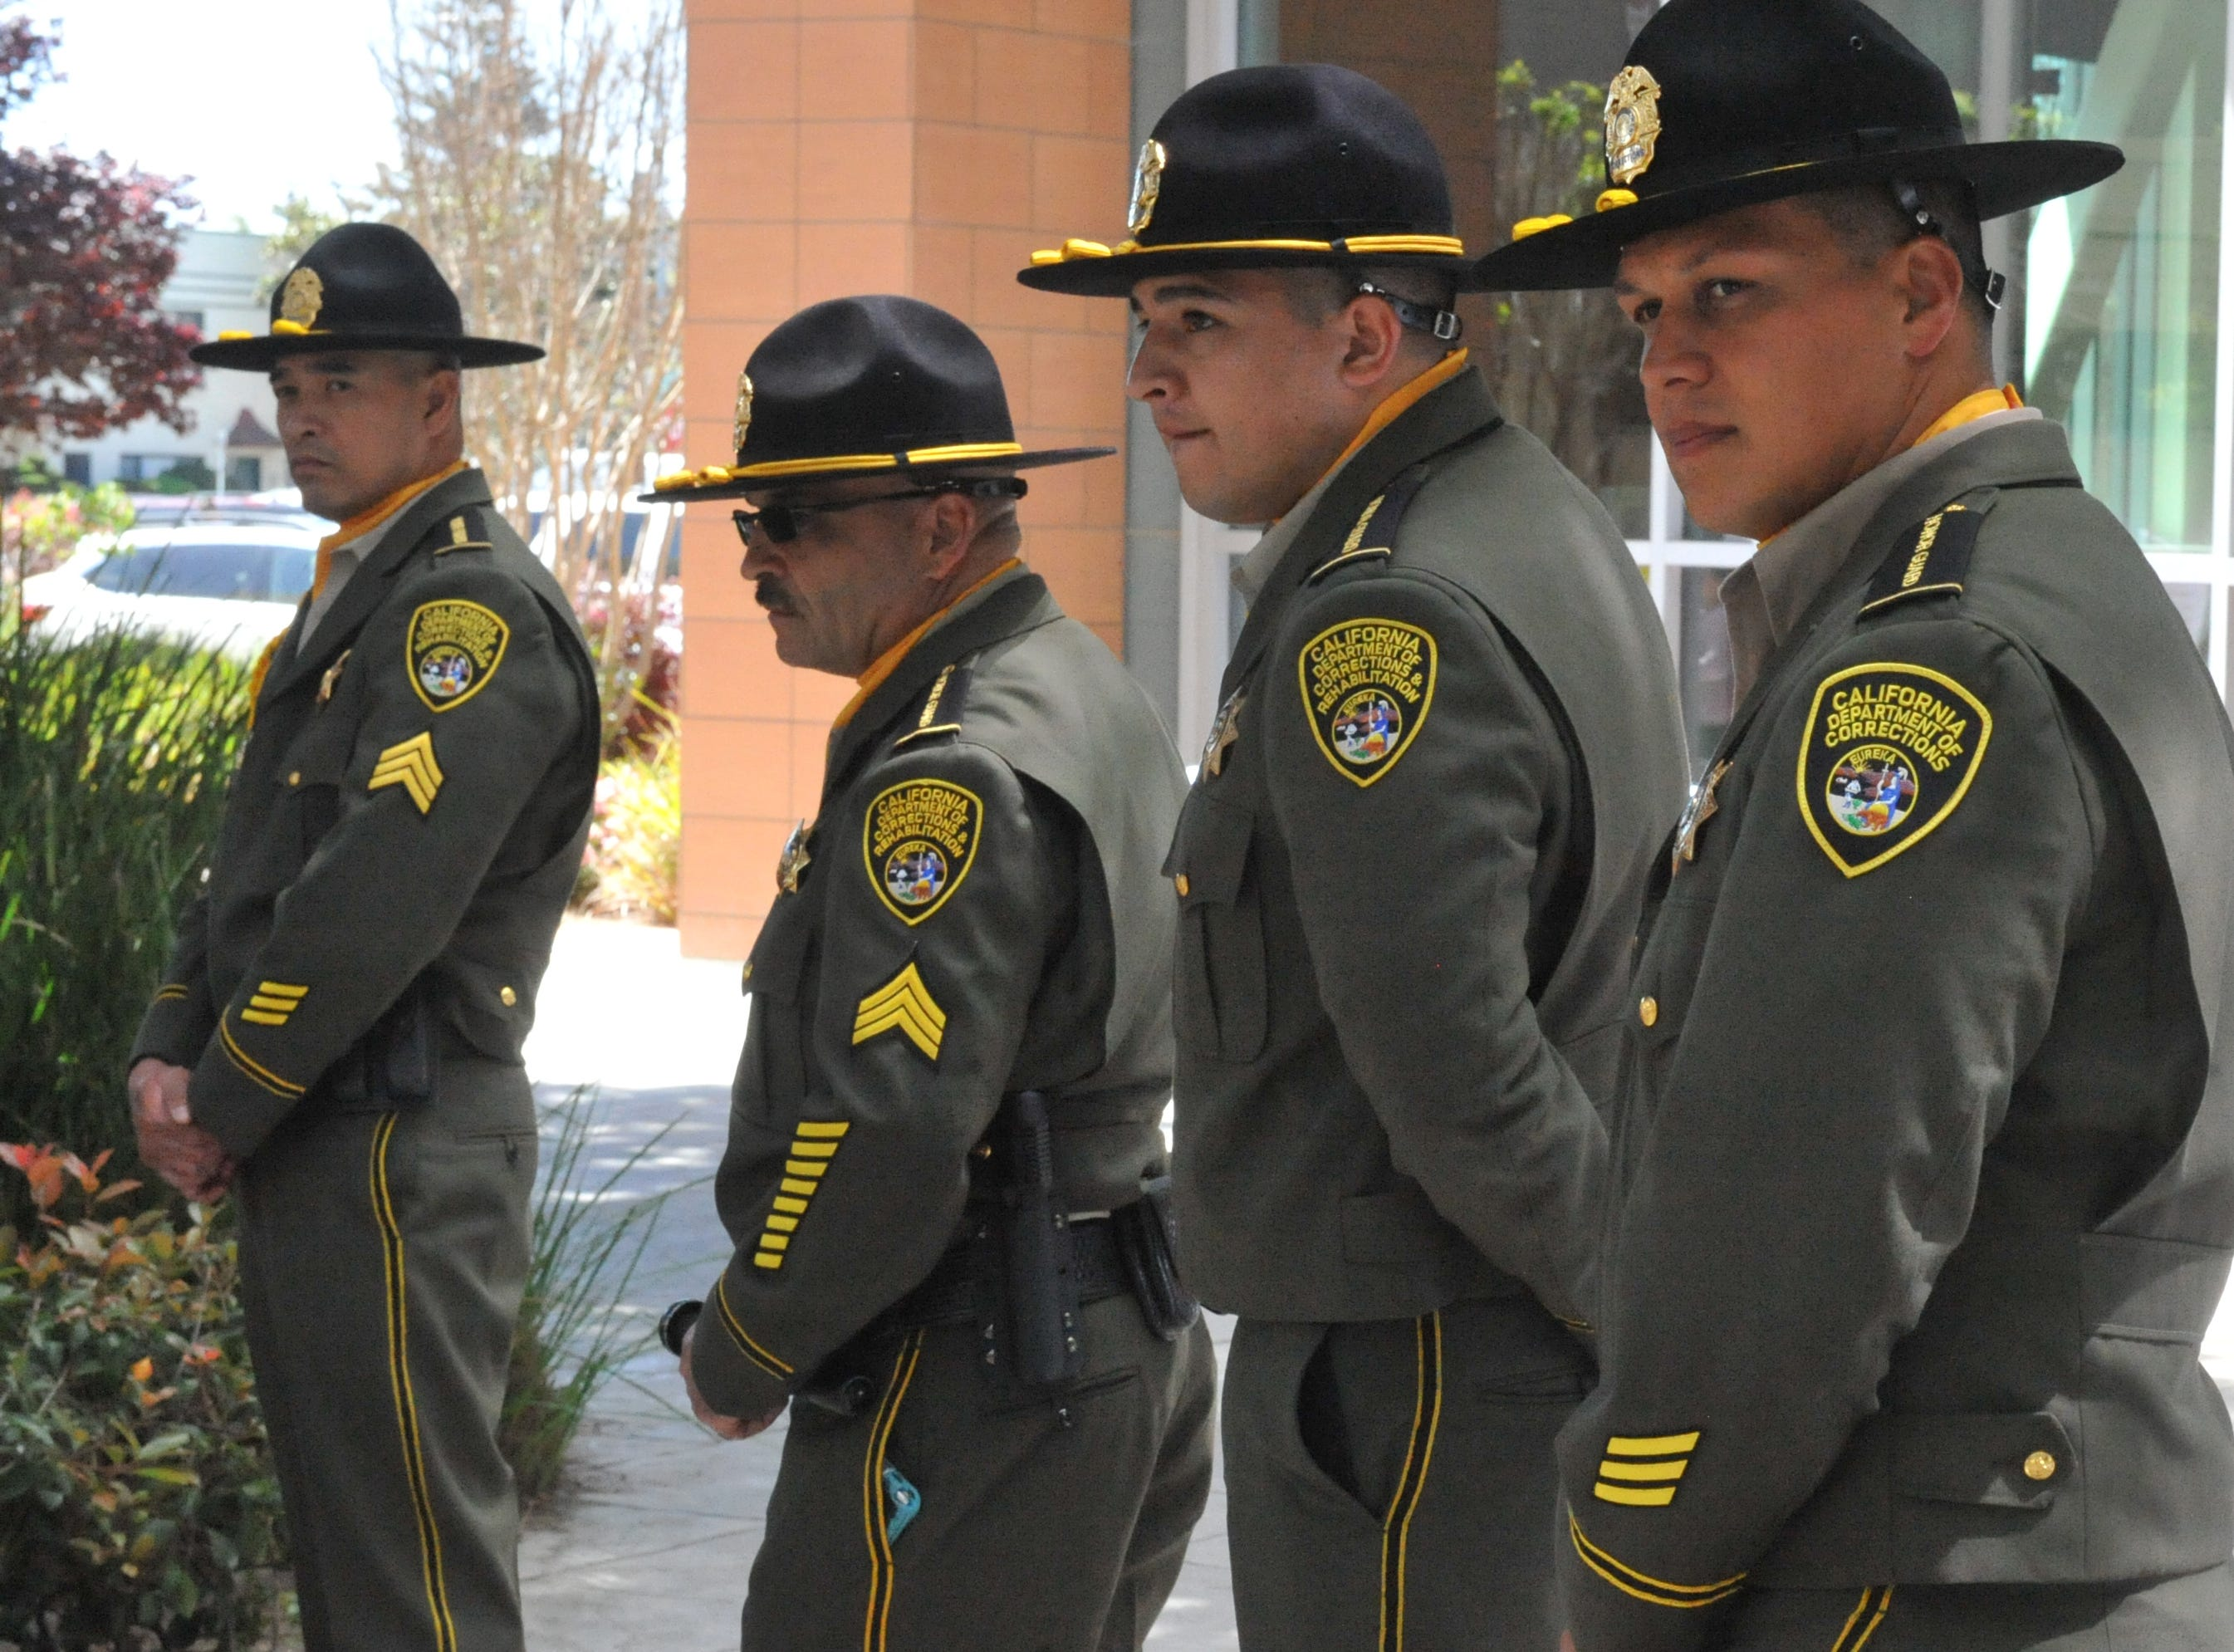 CDCR officers stand outside the door at the Monterey County celebration of National Crime Victims' Rights Week. April 12, 2019.